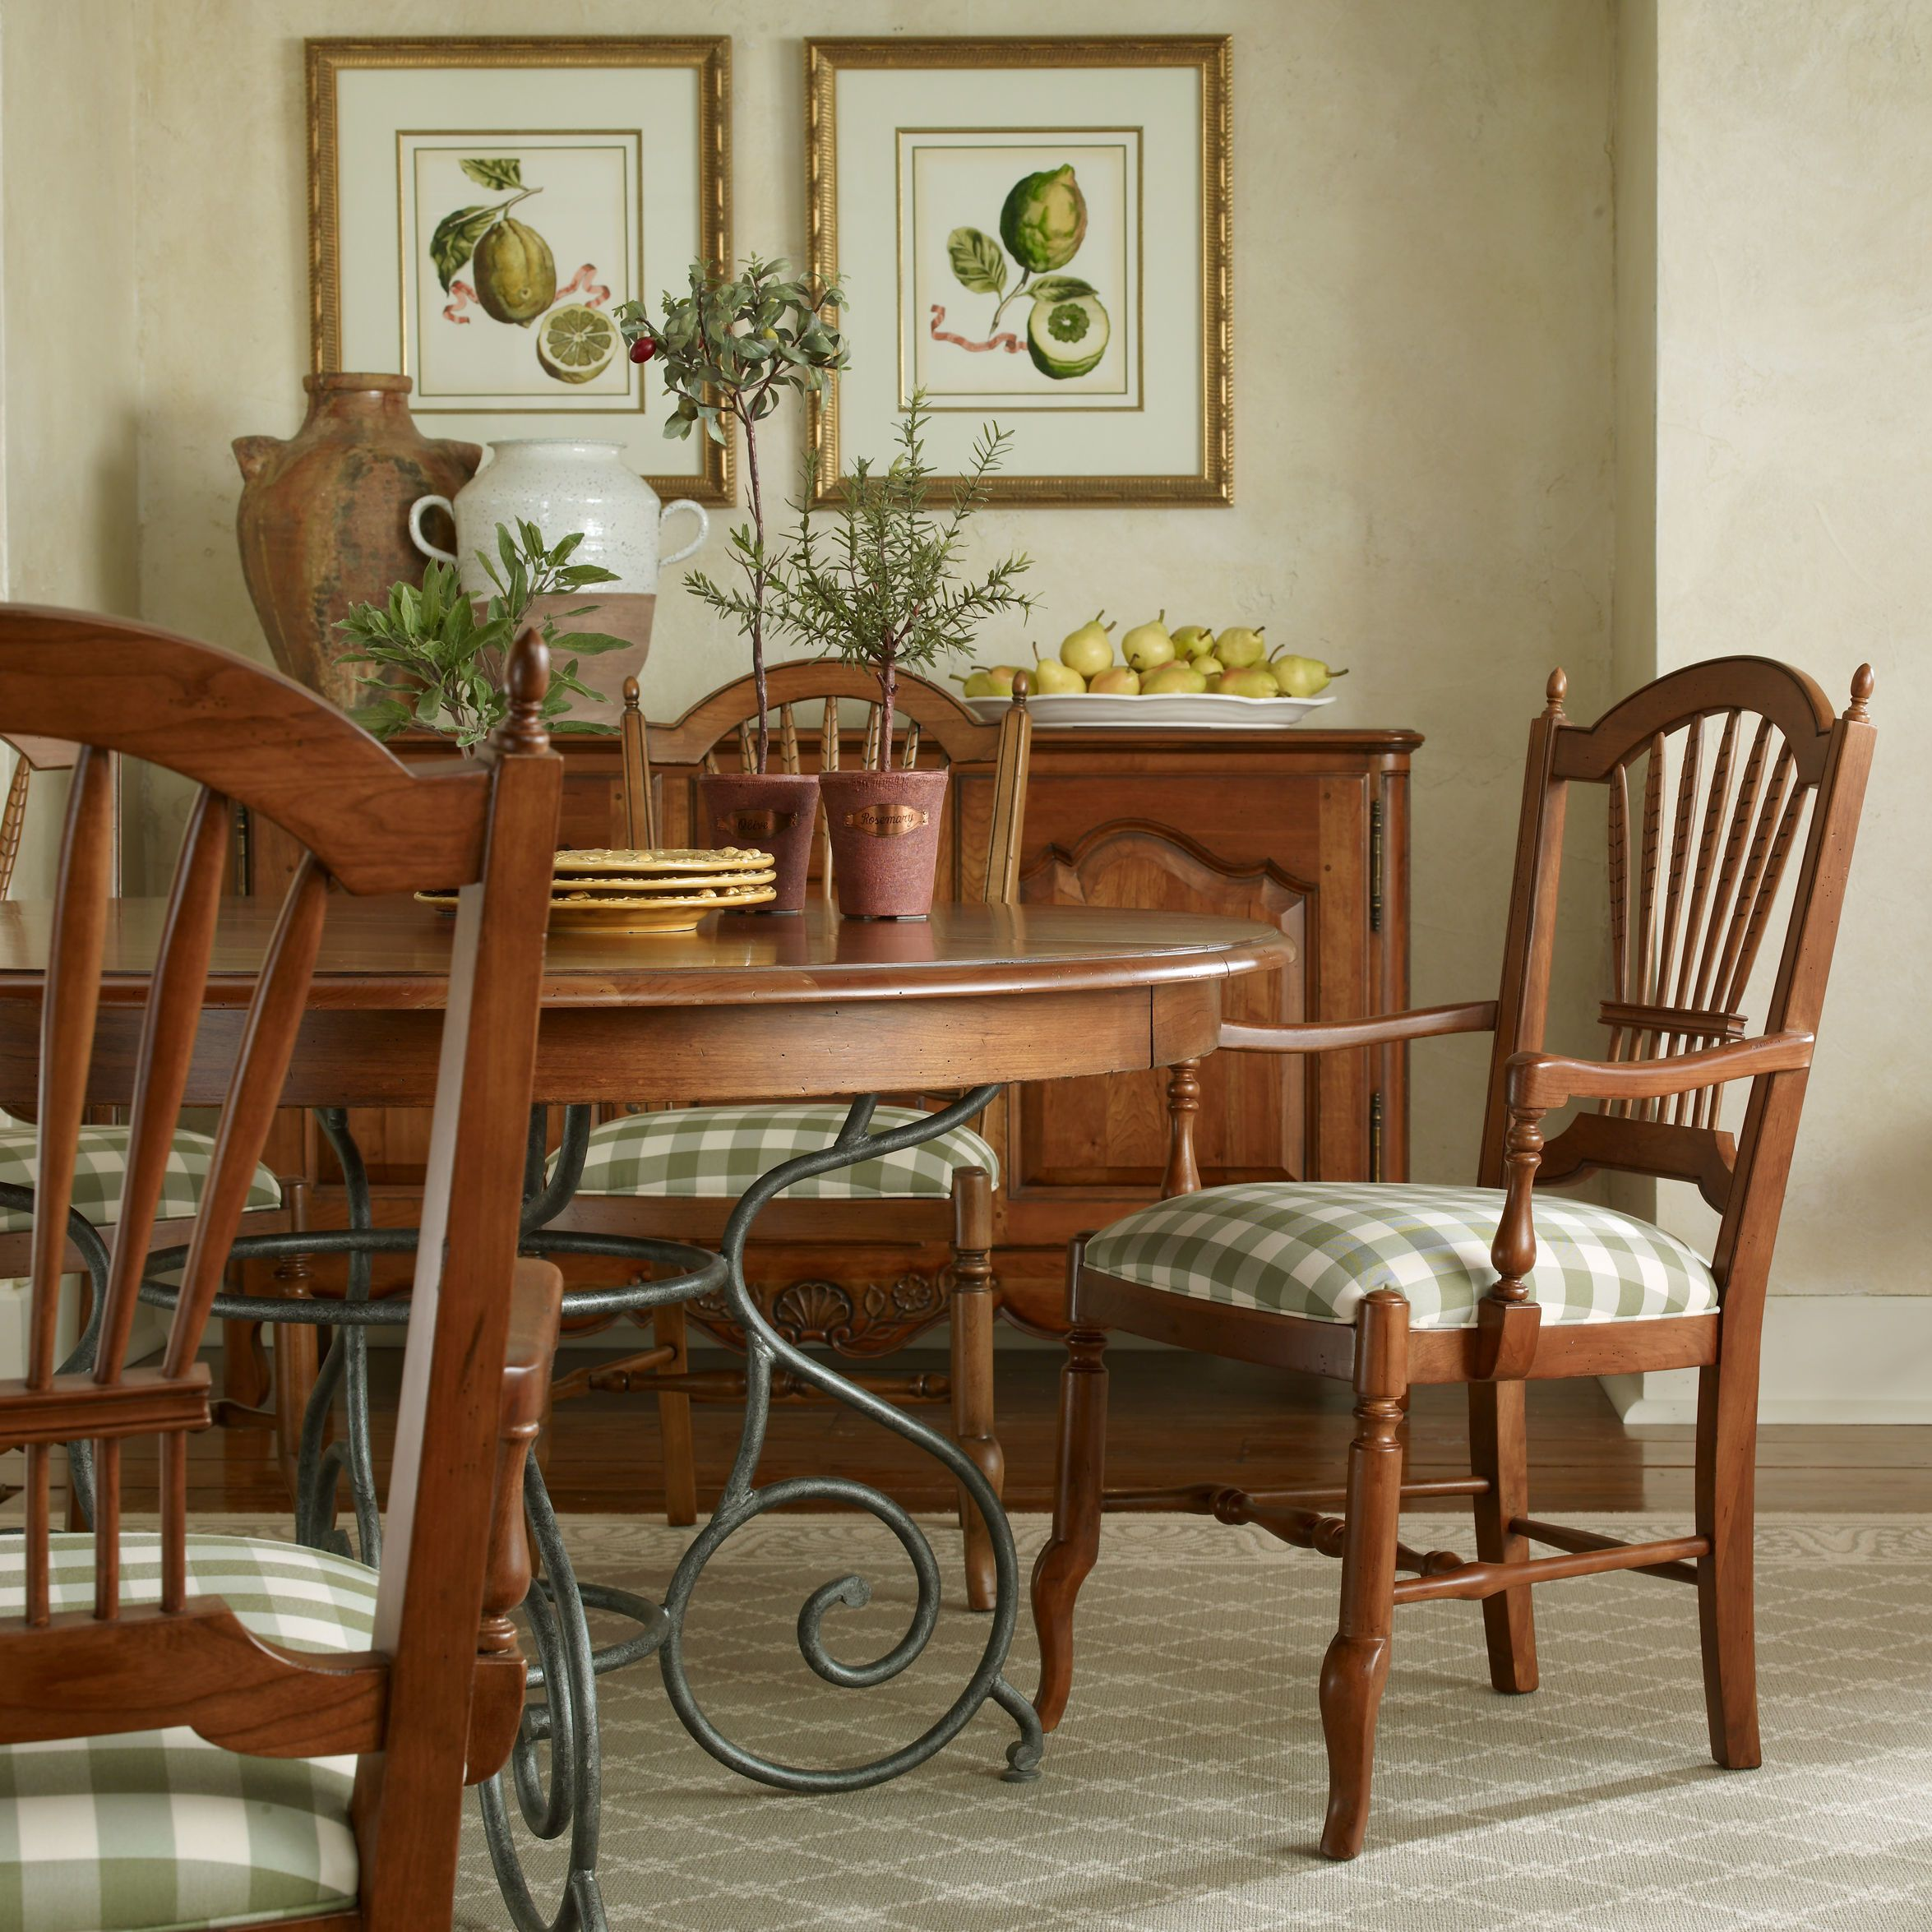 Large Brittany Dining Table Ethan Allen Us Home Decor Decor